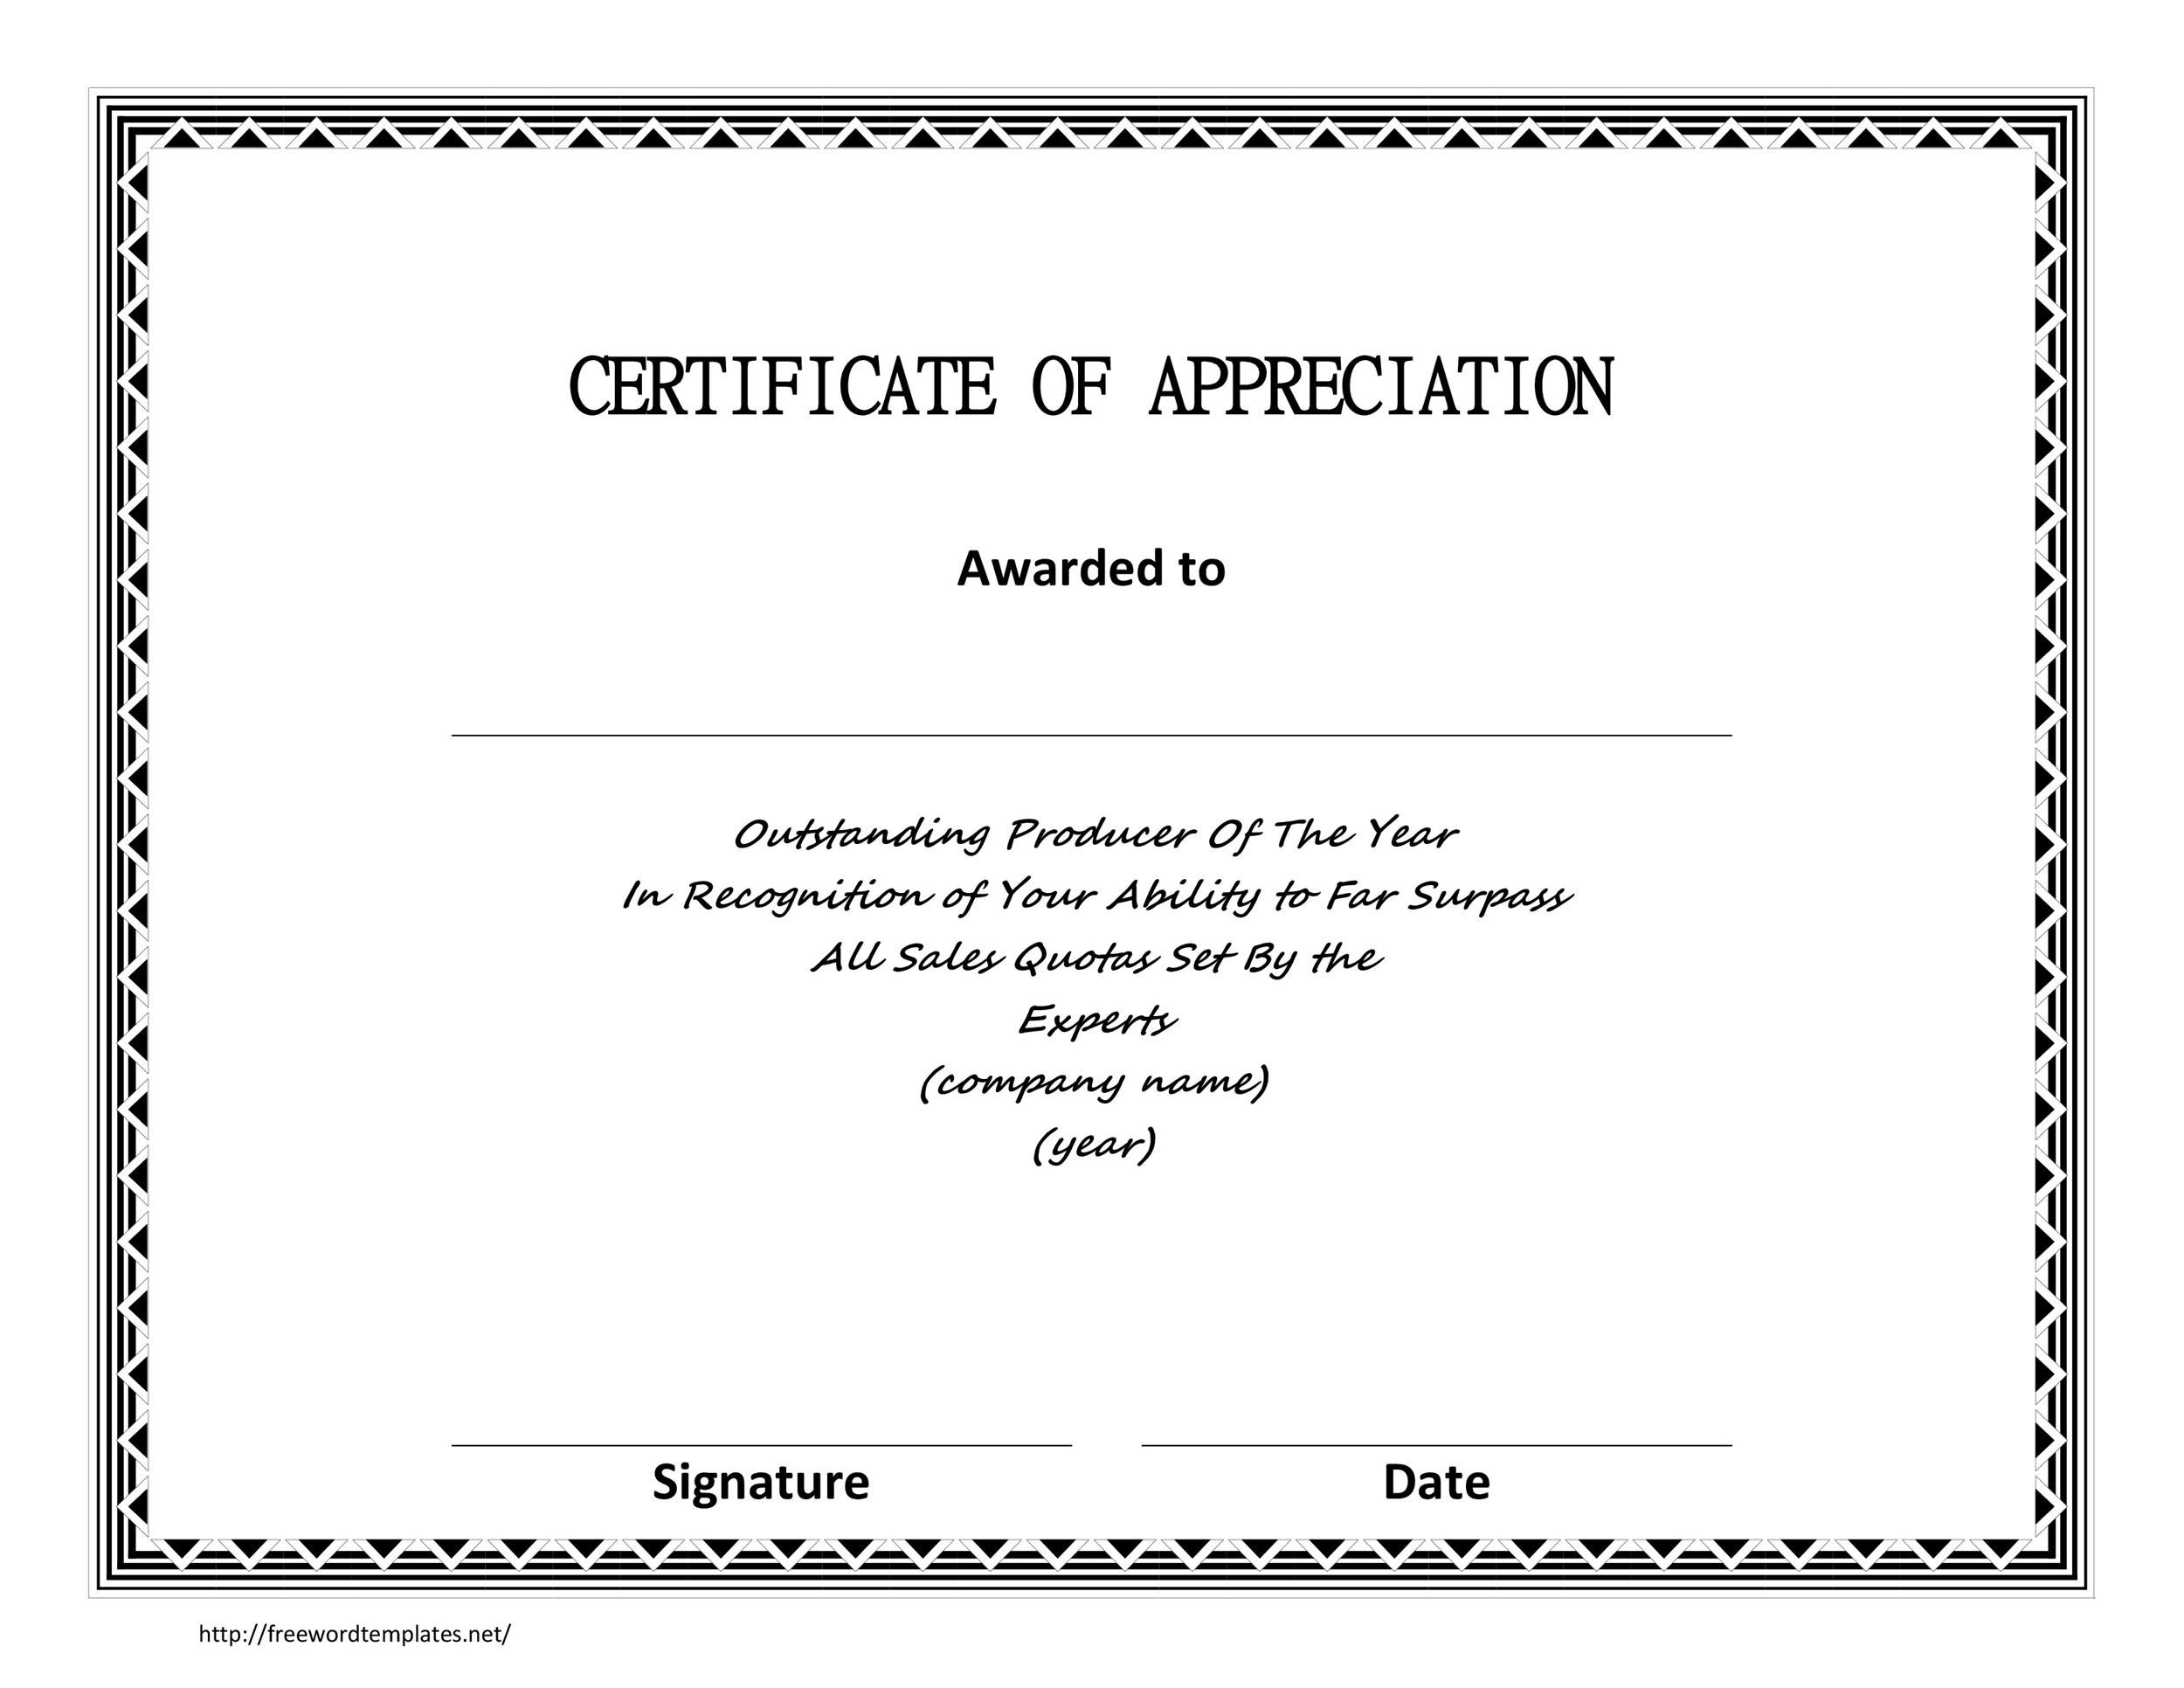 free certificate of appreciation 06